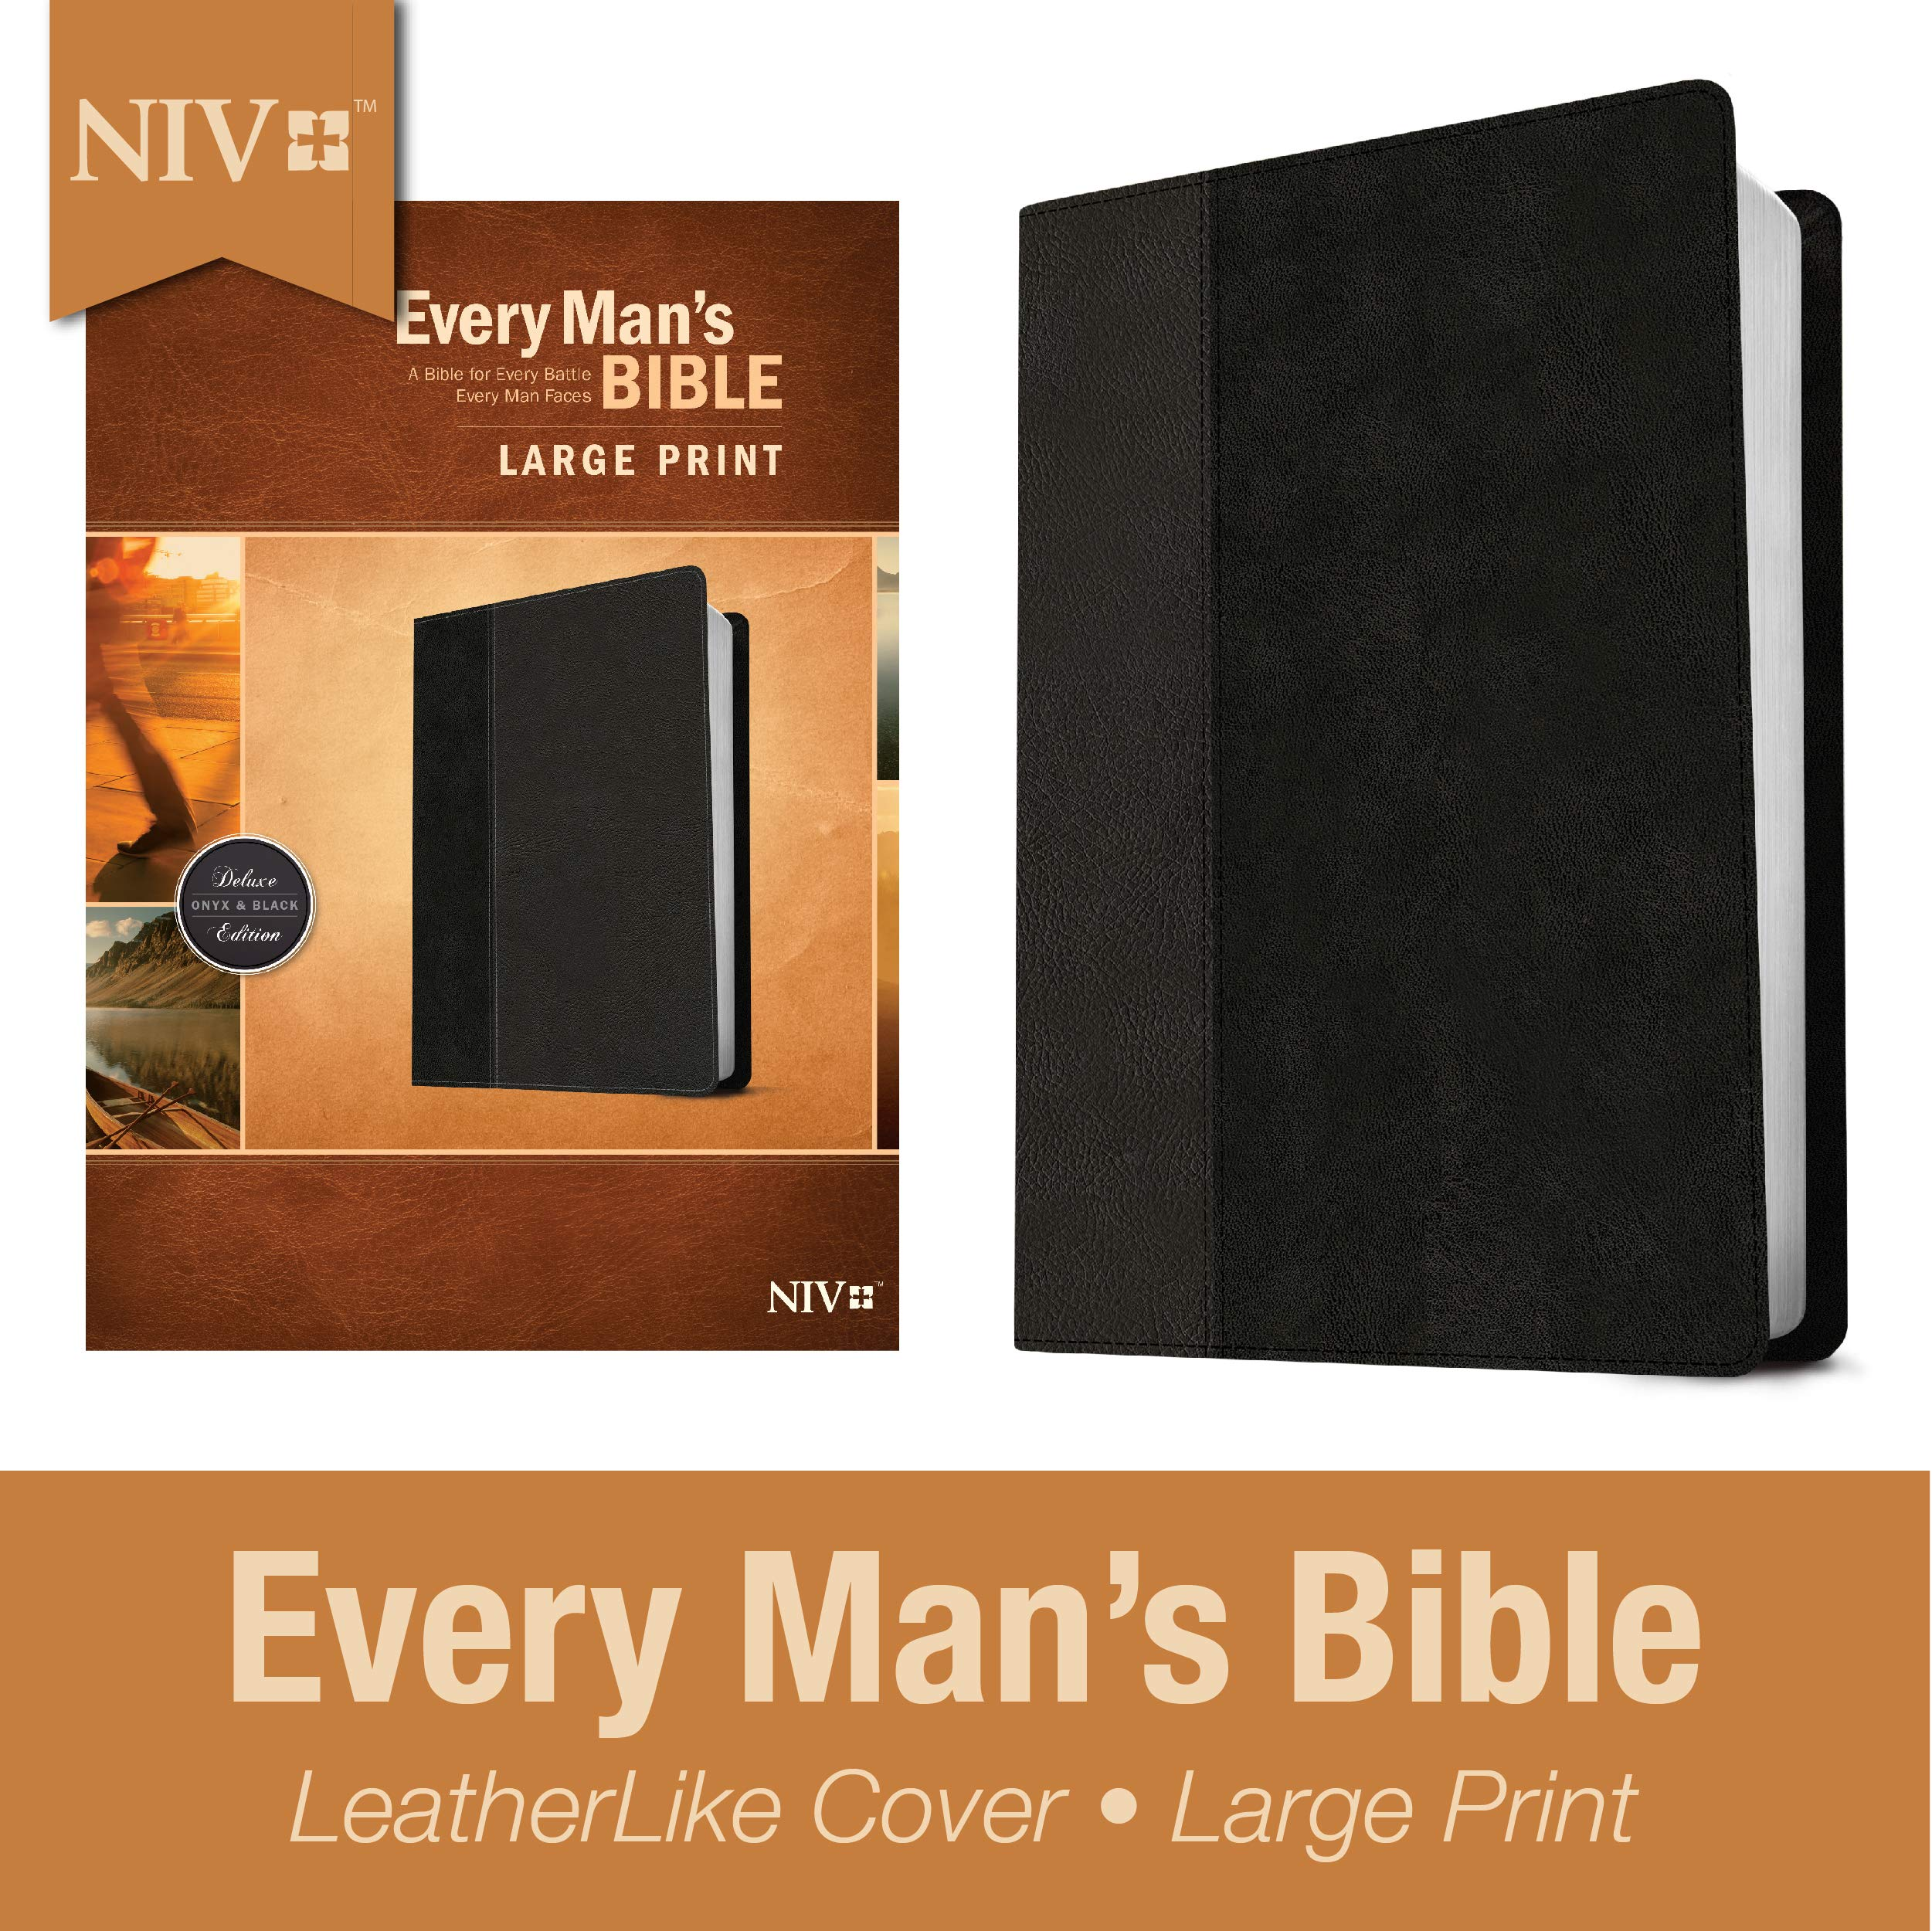 Every Man's Bible NIV, Large Print, TuTone (LeatherLike, Onyx/Black) – Study Bible for Men with Study Notes, Book…